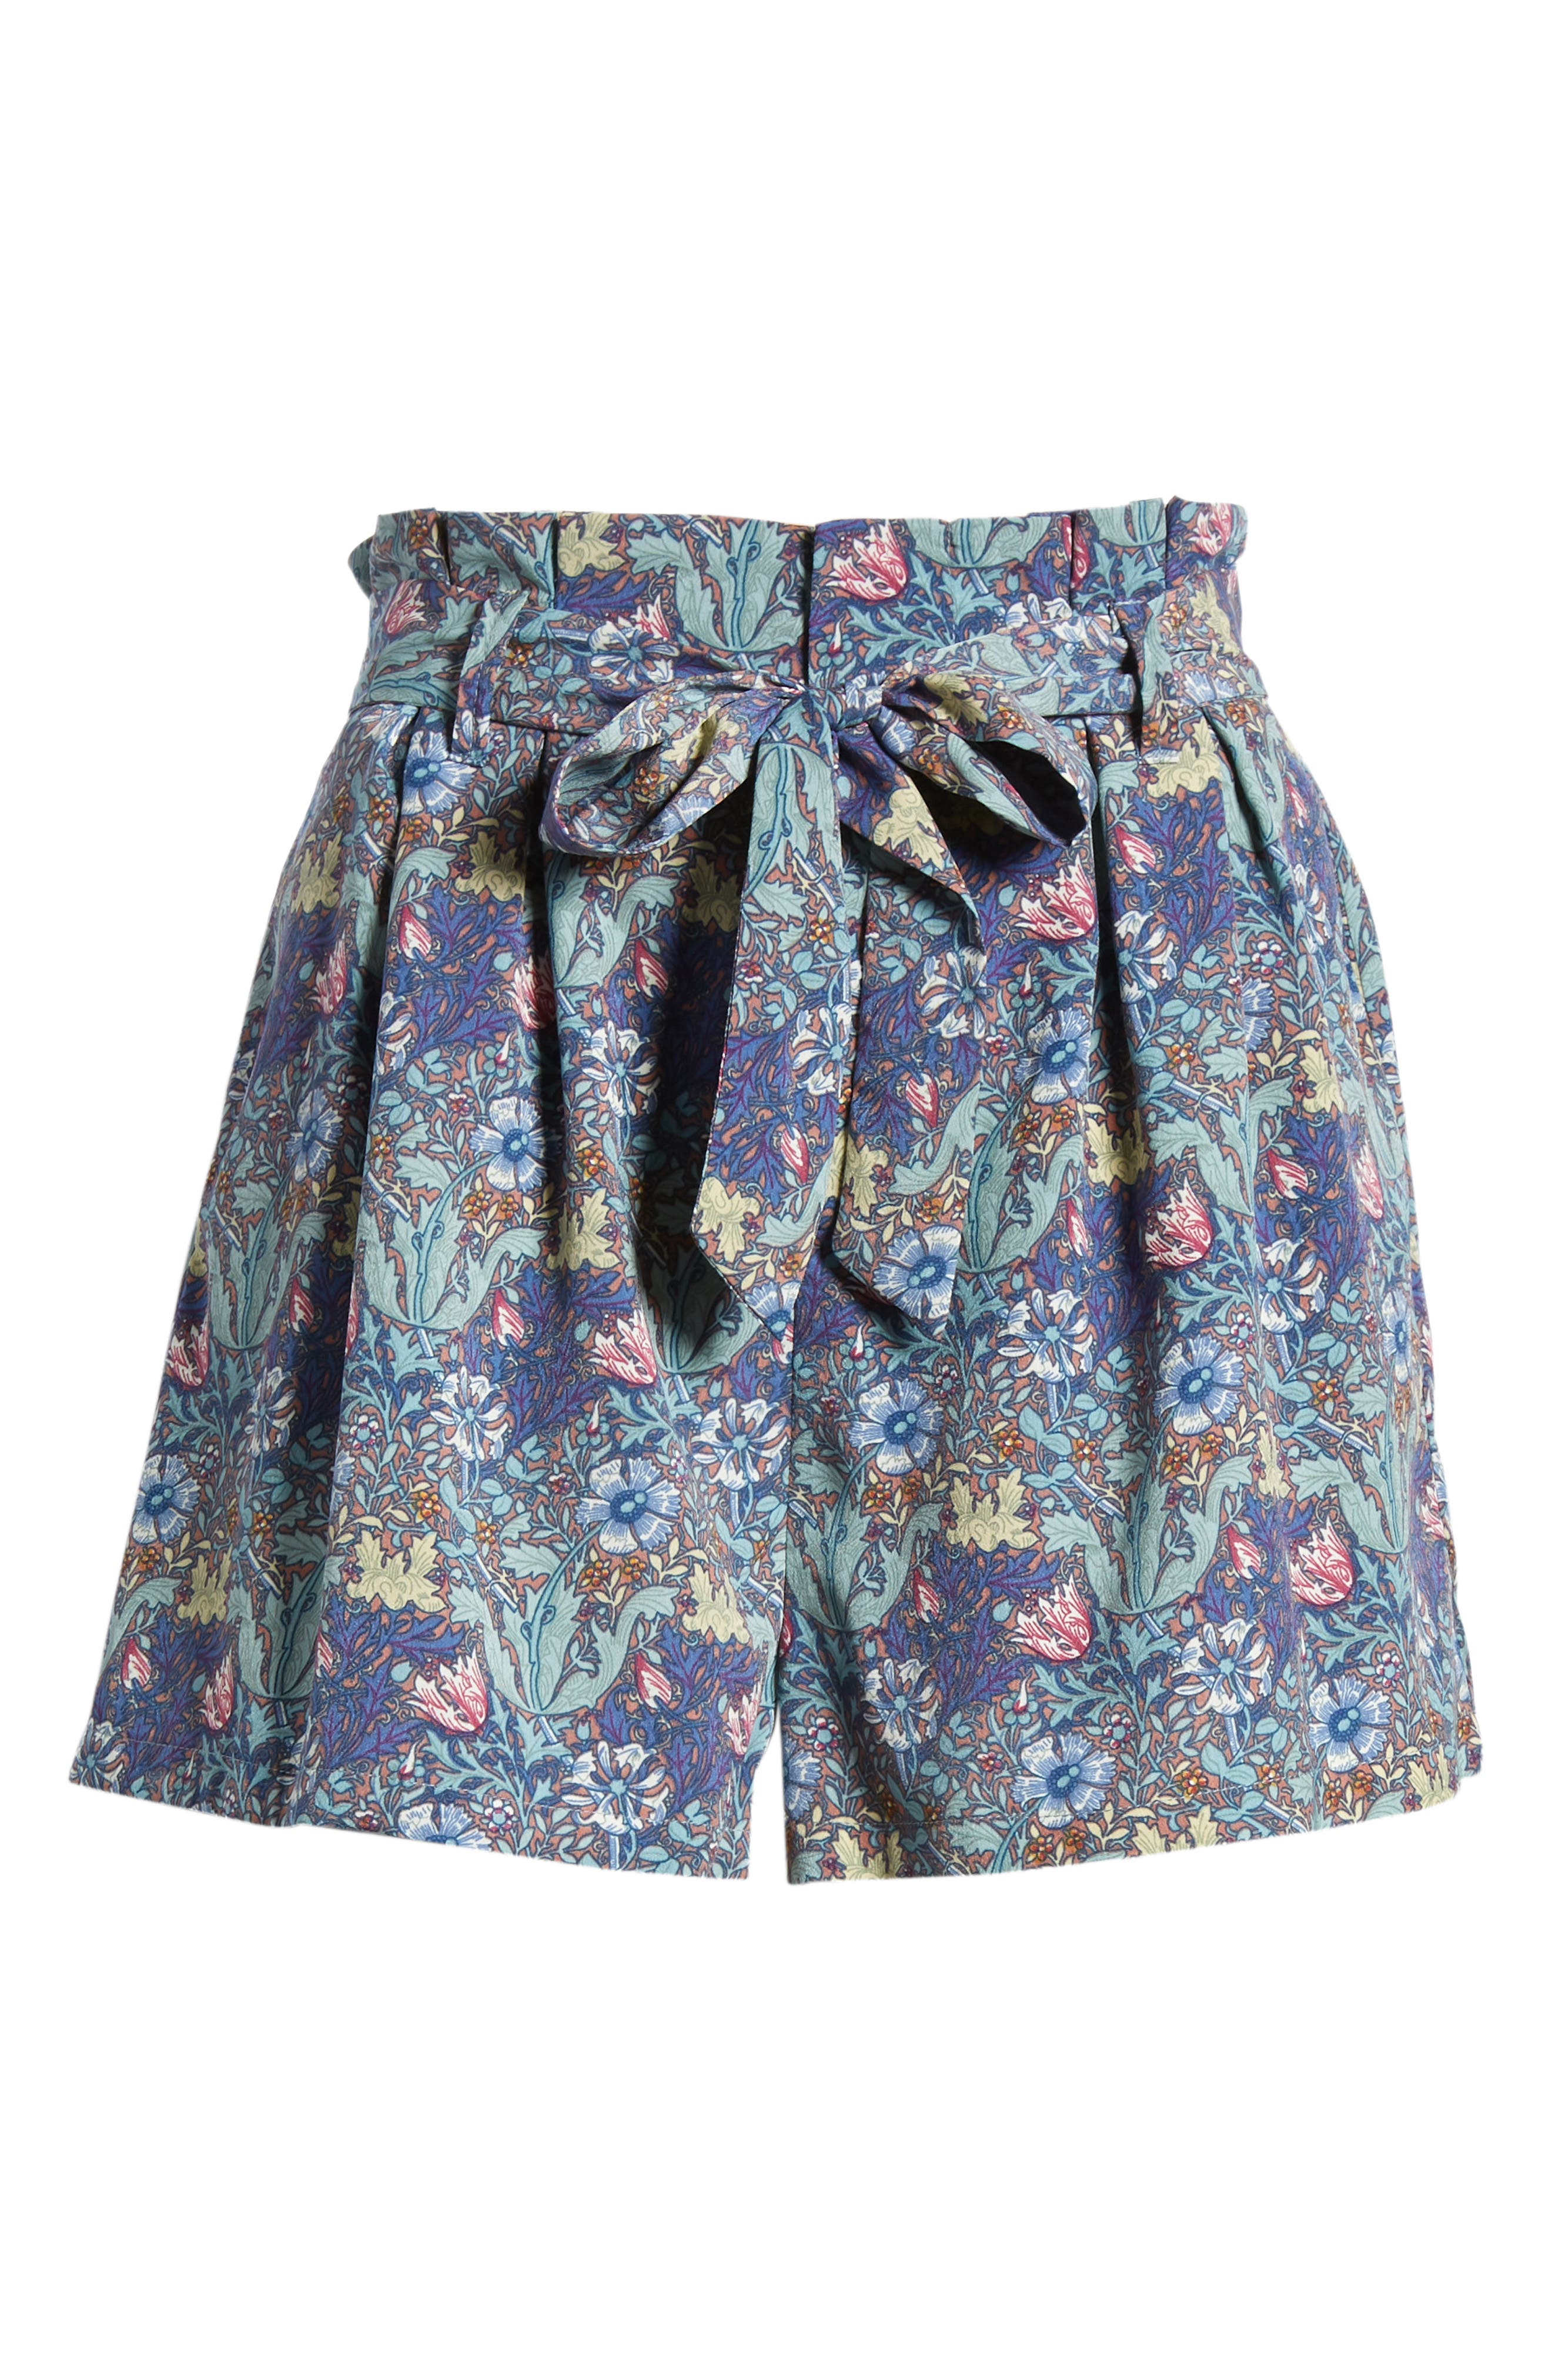 Floral Paperbag Shorts,                             Alternate thumbnail 6, color,                             400